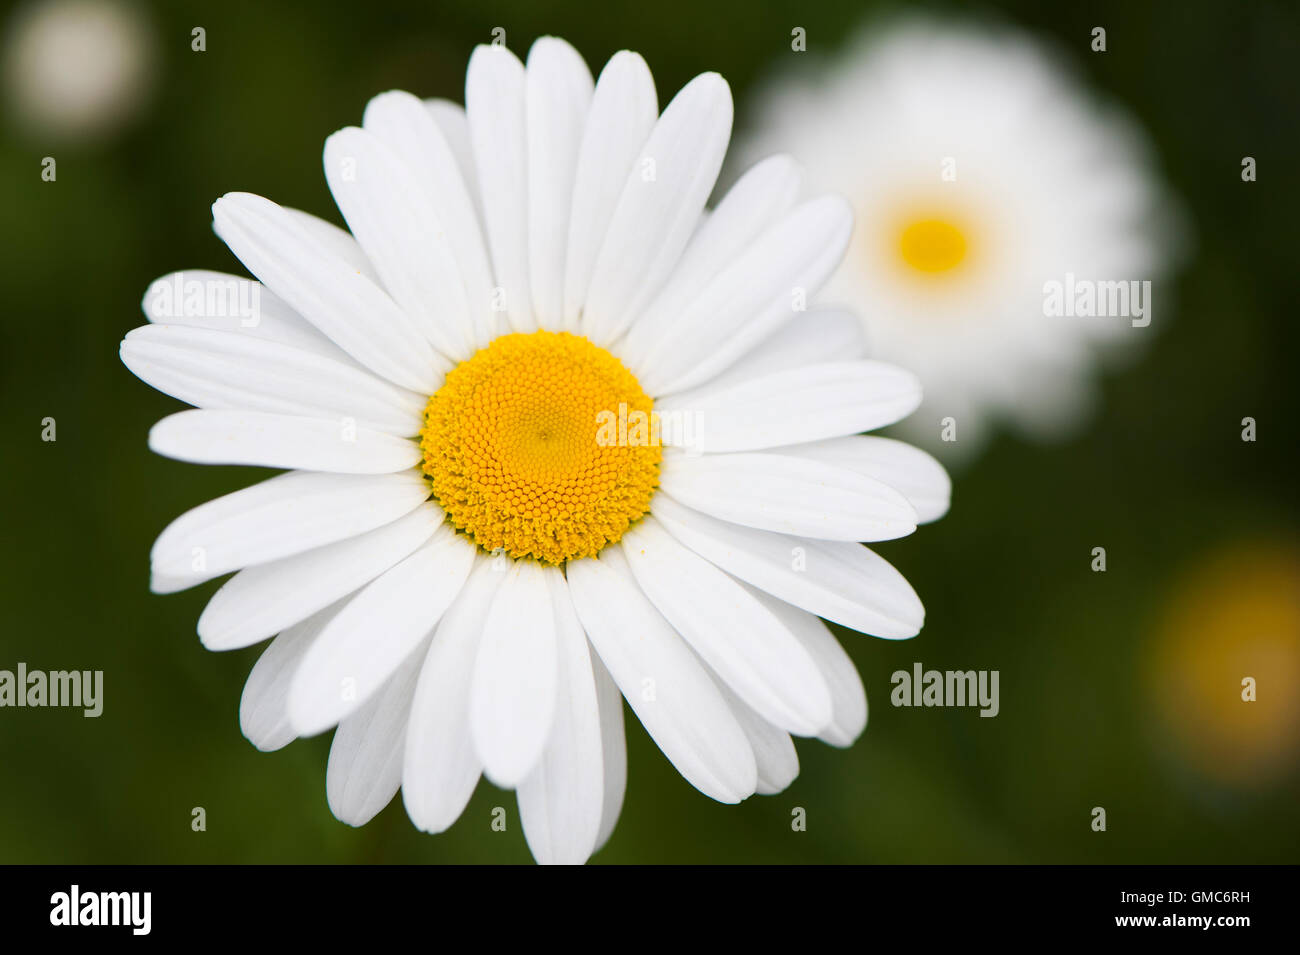 Close-up detail of a beautiful, showy, flower head belonging to an ox-eye daisy or marguerite, (Leucanthemum vulgare) Stock Photo